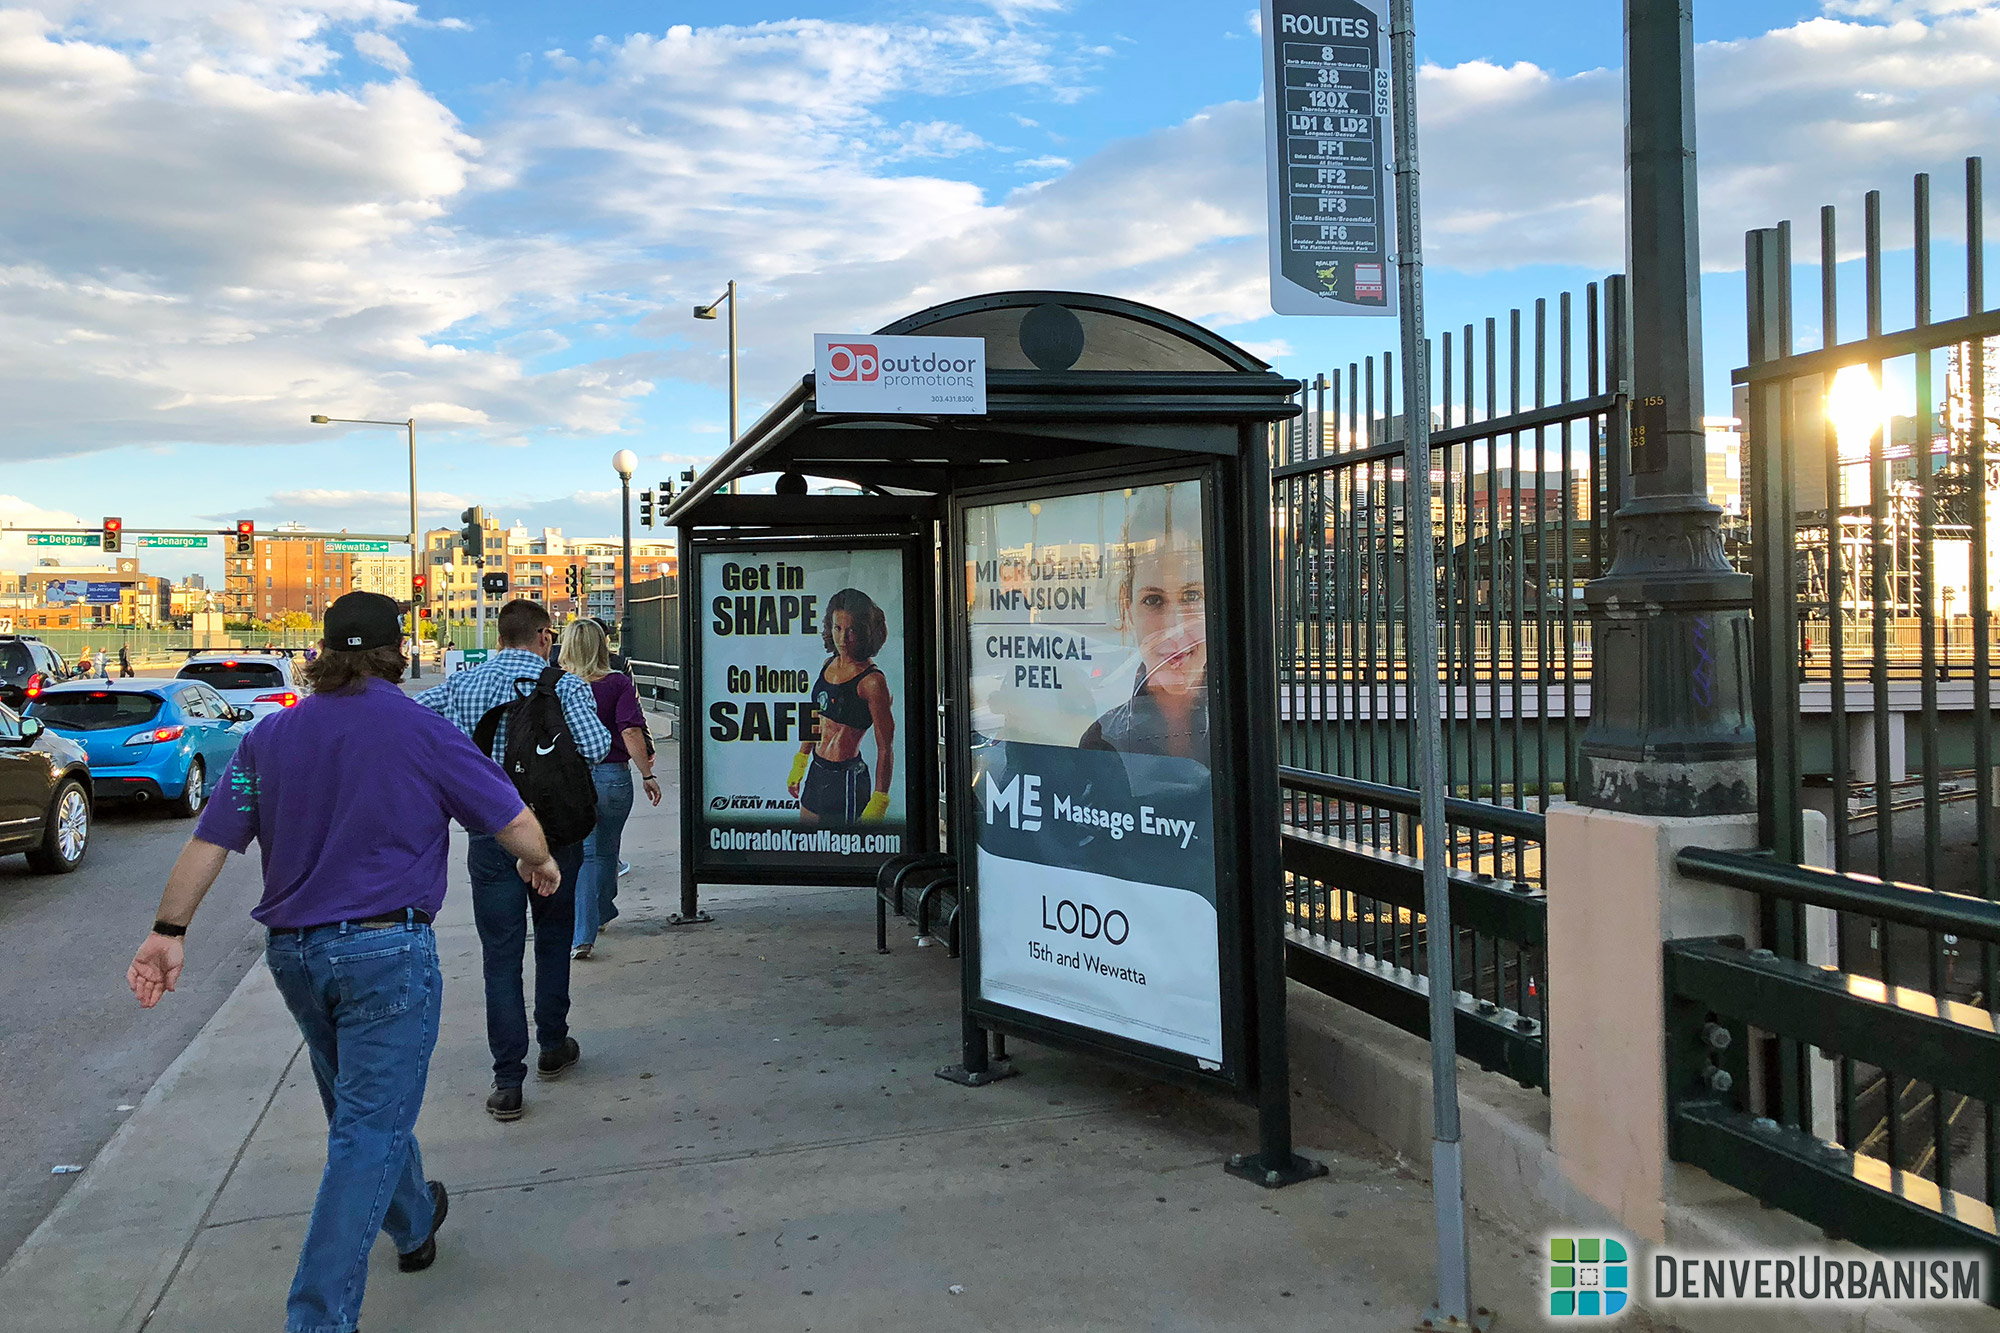 Most of Denver's Bus Stop Shelters Are Maintained by Private Contractors